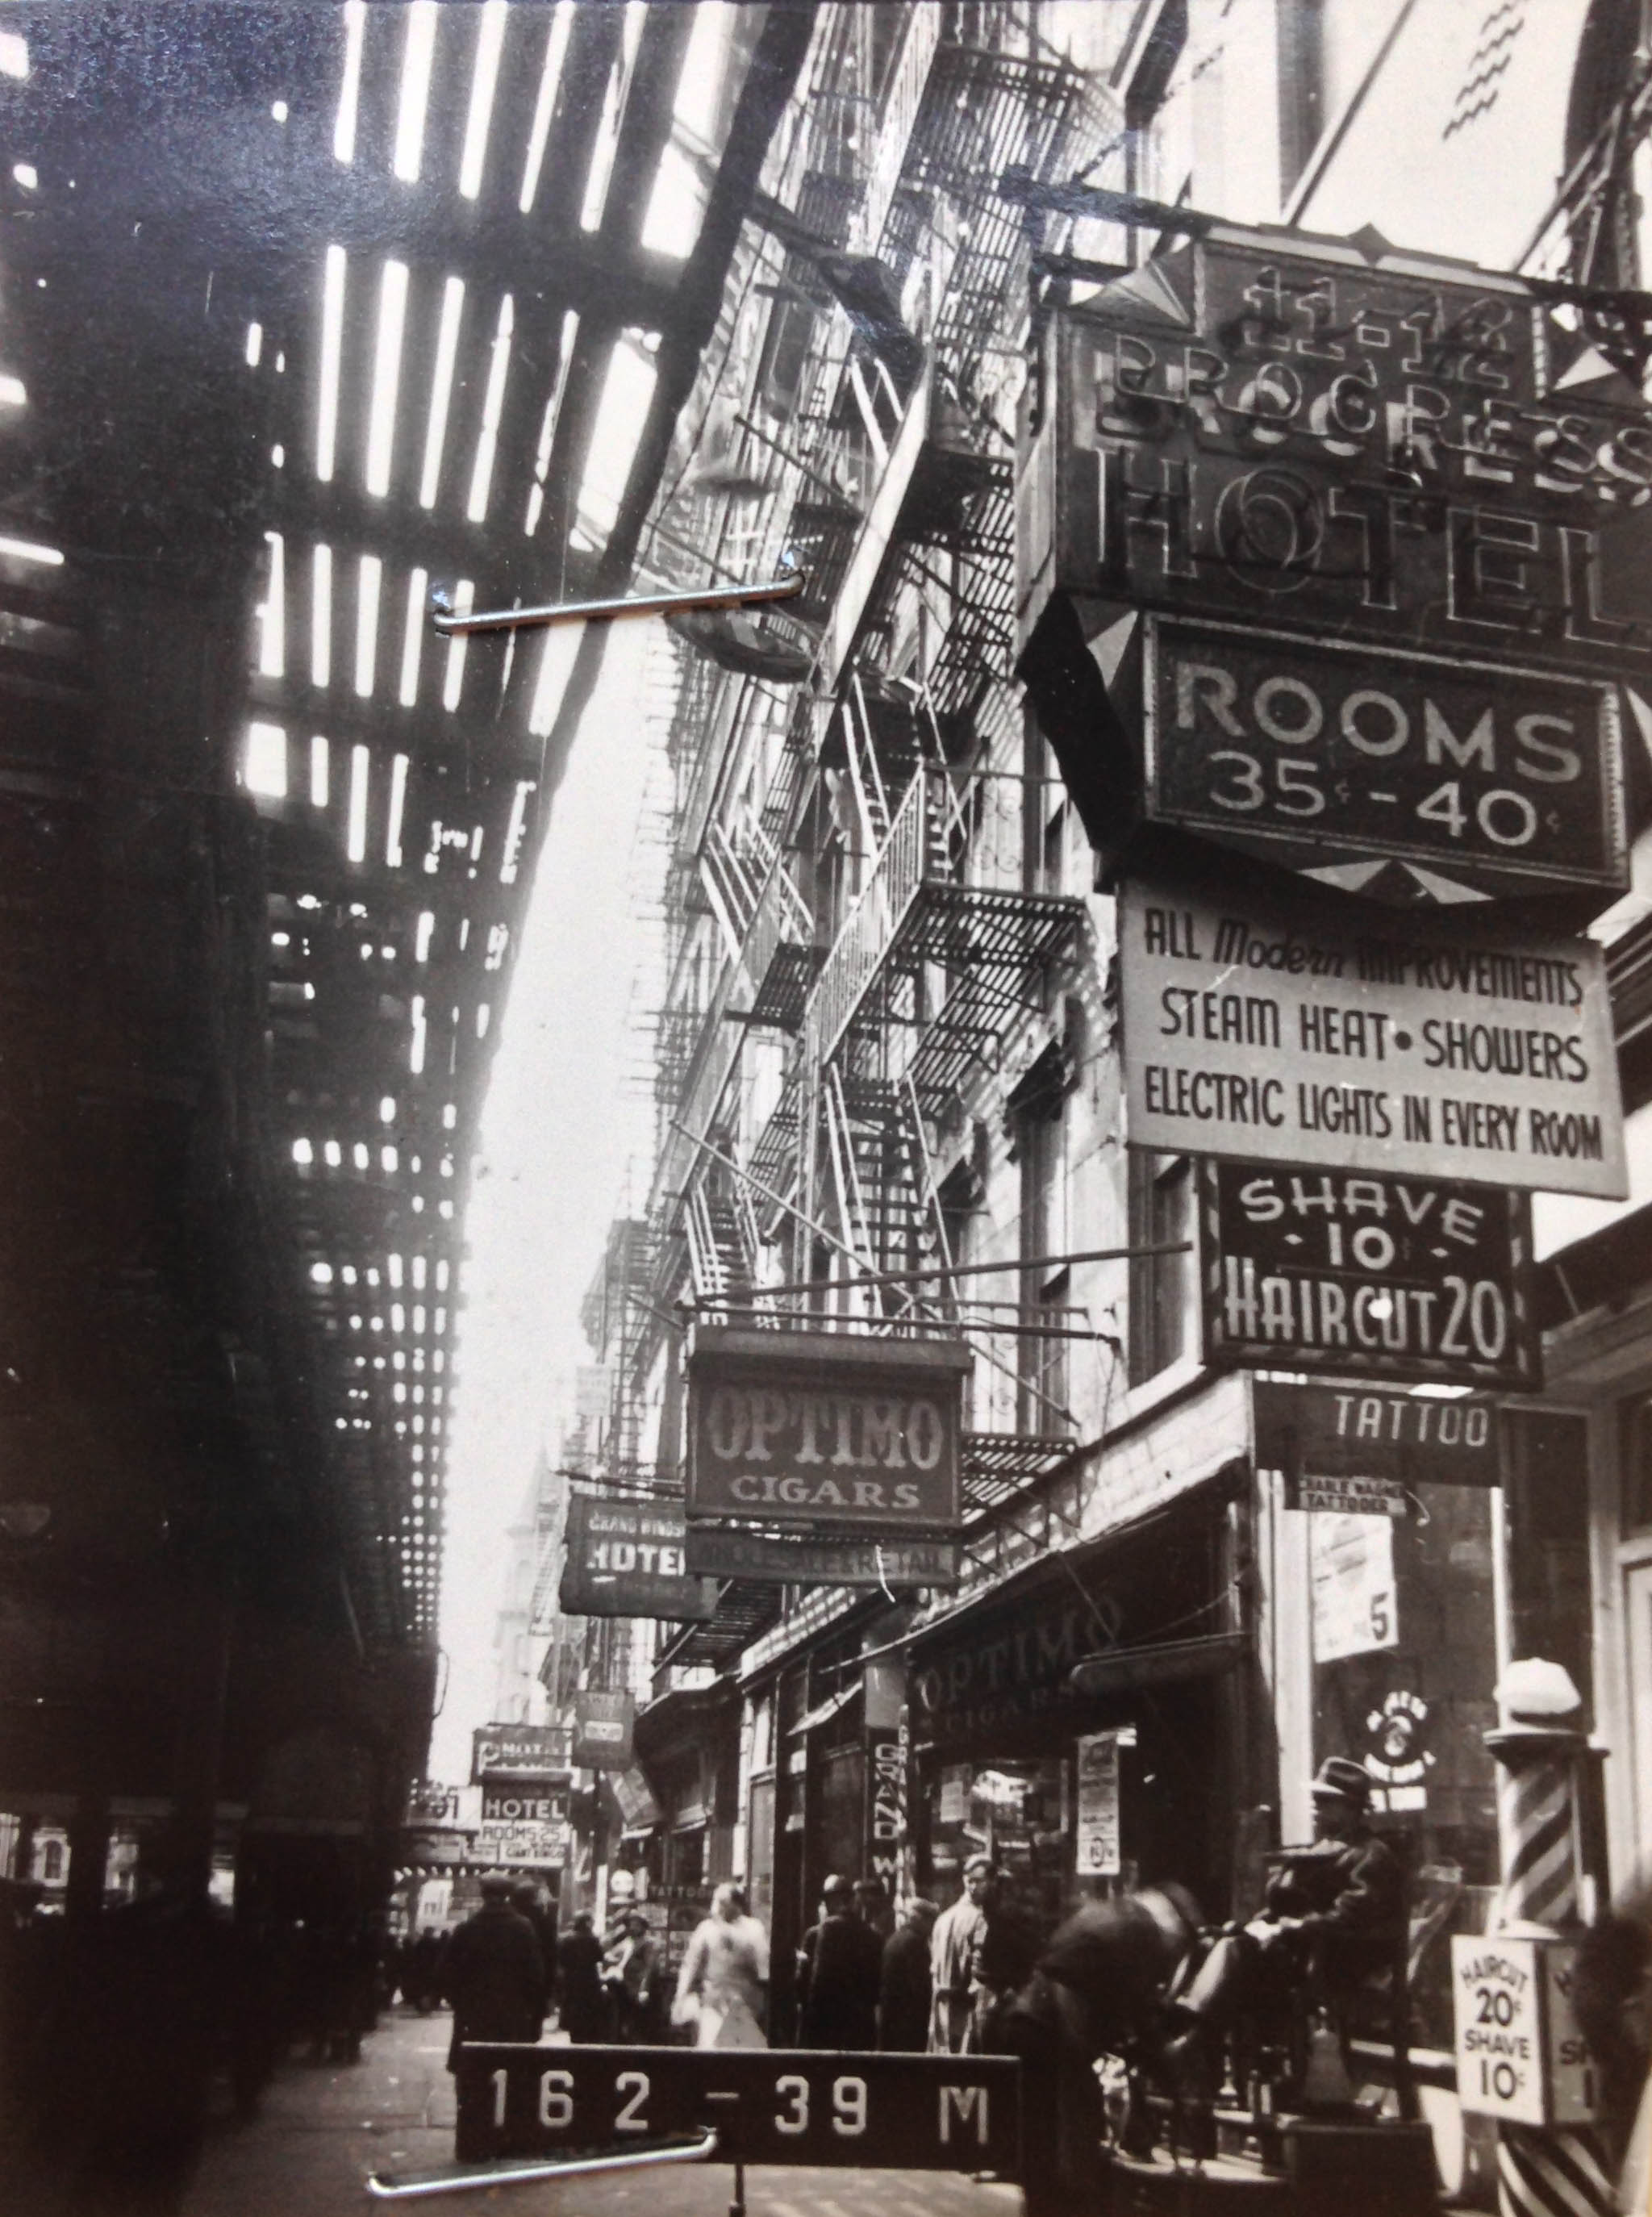 7 Chatham Square, Manhattan, circa 1940. The elevated train tracks, once part of the IRT Third Avenue Line, have been demolished. Prices on signs include 35 cents for a hotel rooms and a 10 cent barber shop shave.Department of Finance Collection, NYC Municipal Archives.